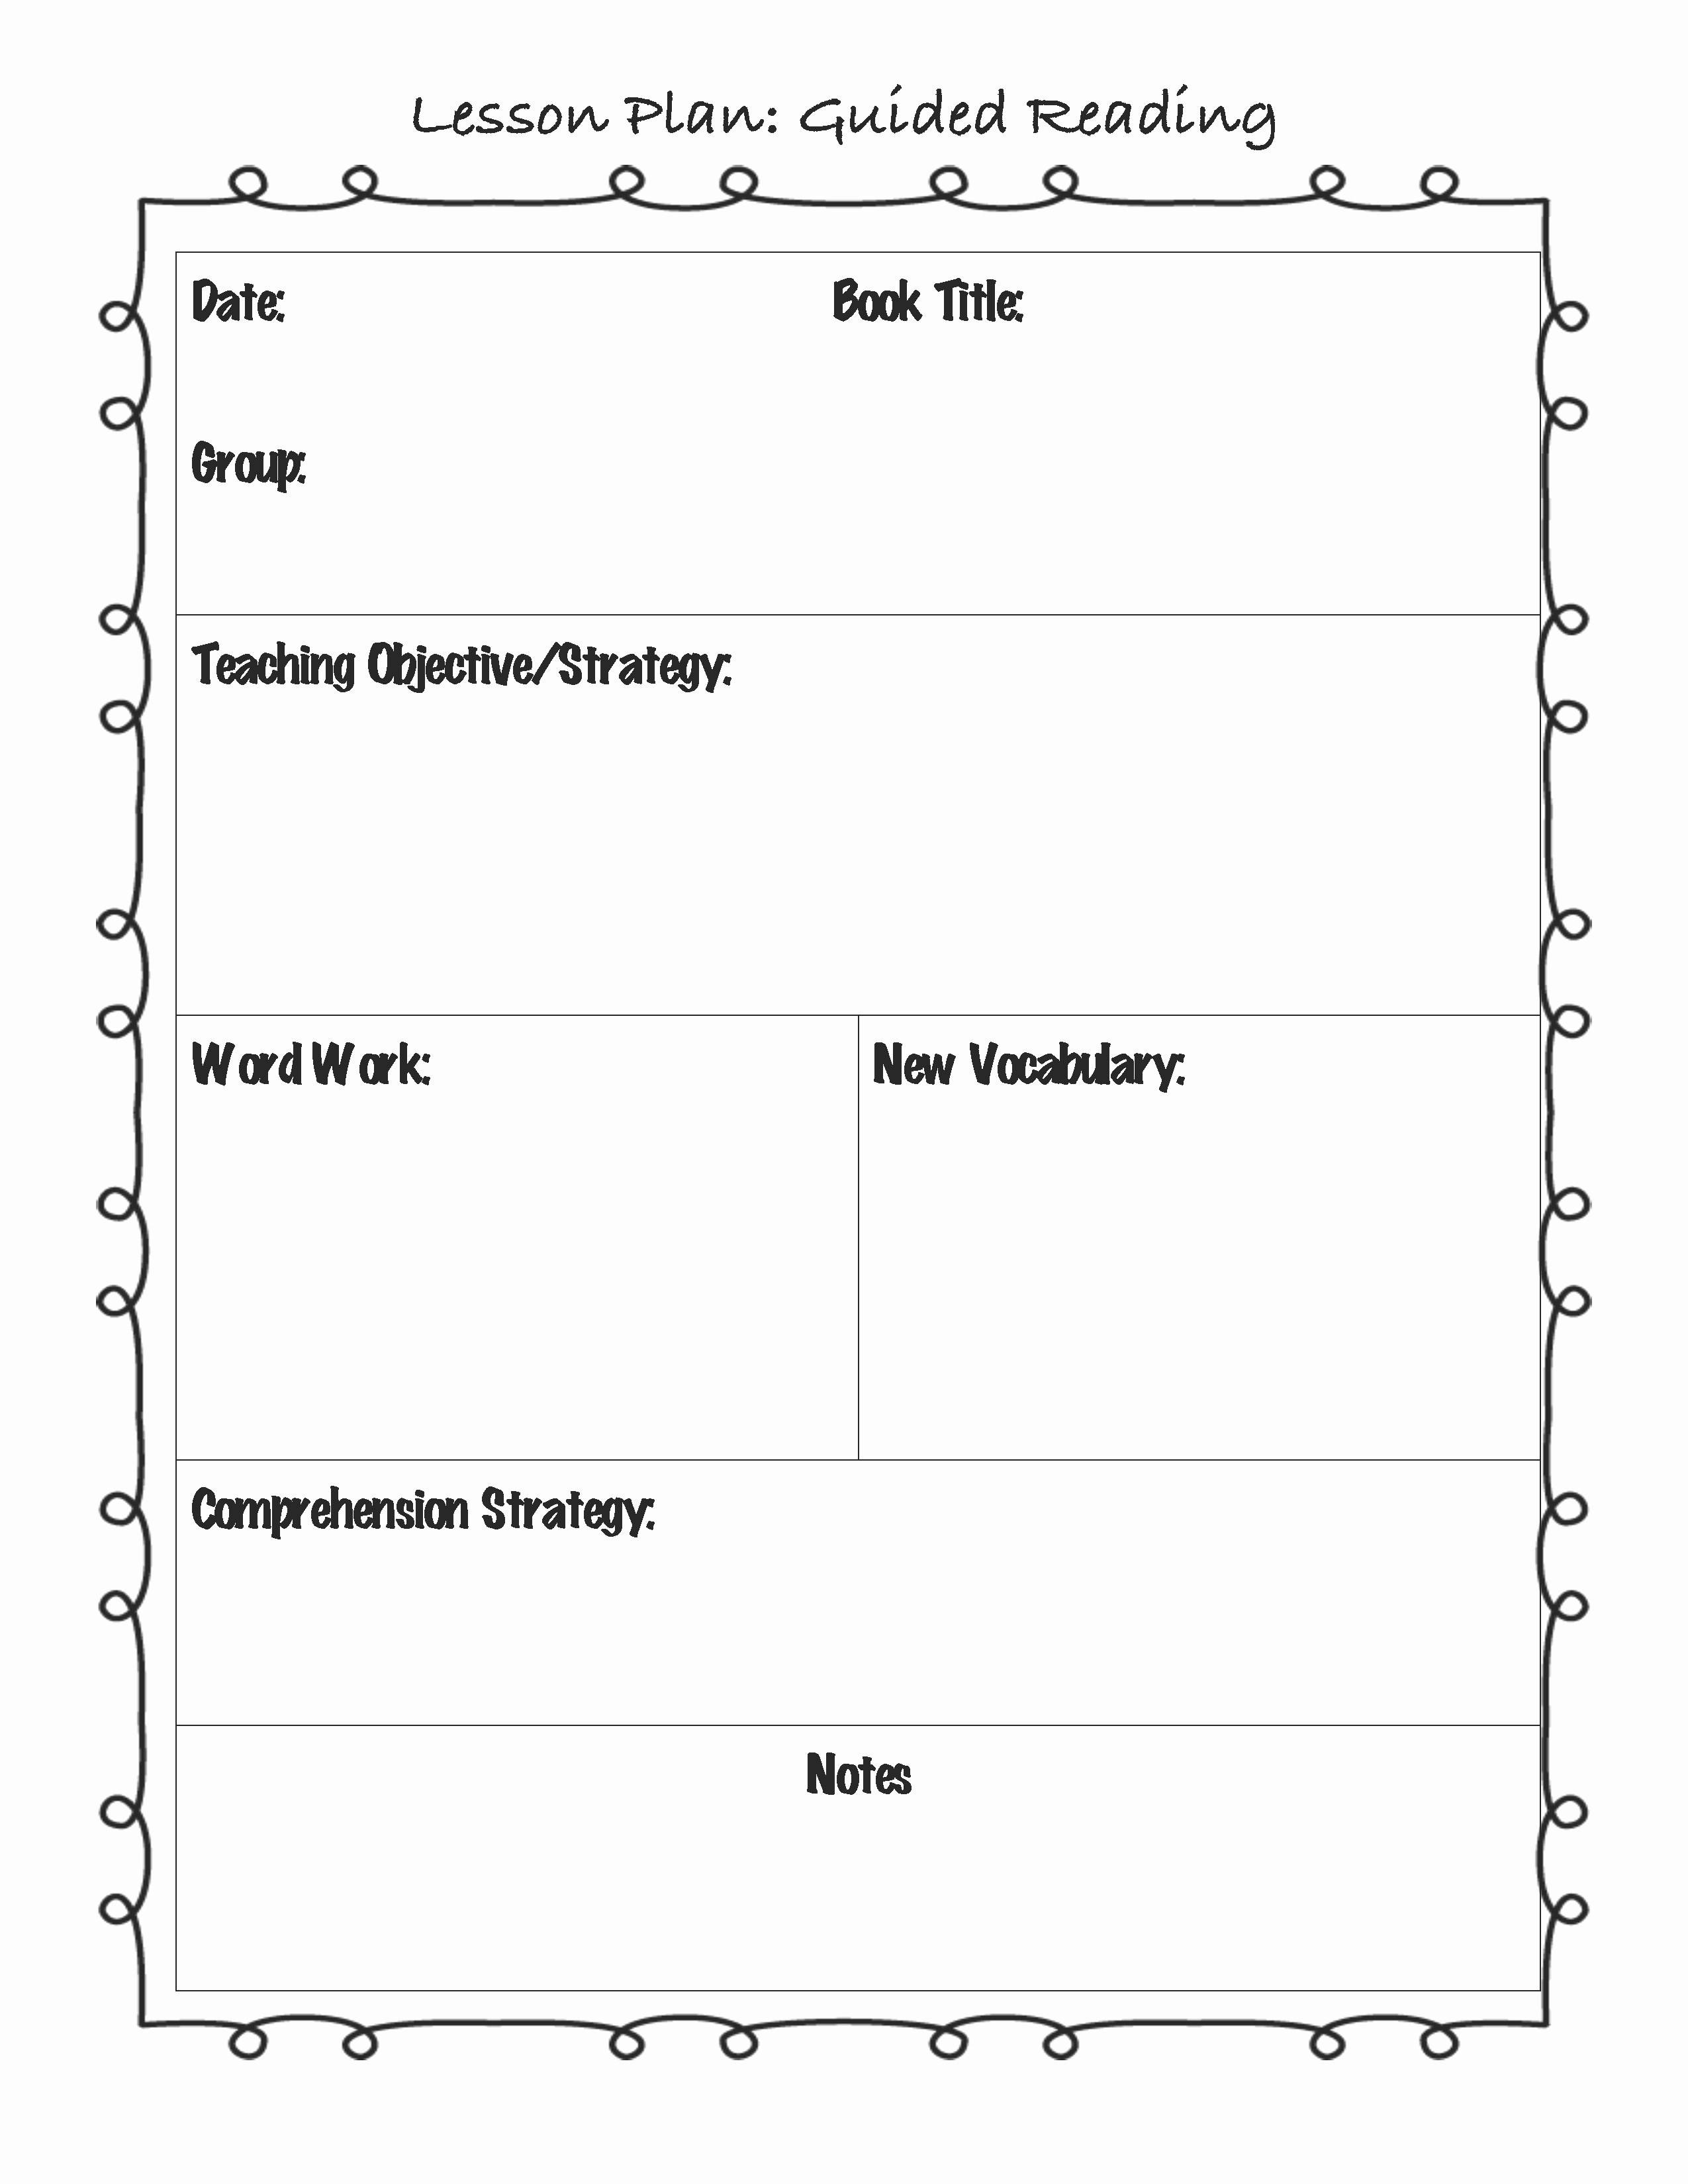 Guided Reading Lesson Plan Template Fresh Guided Reading Lesson Plan Template